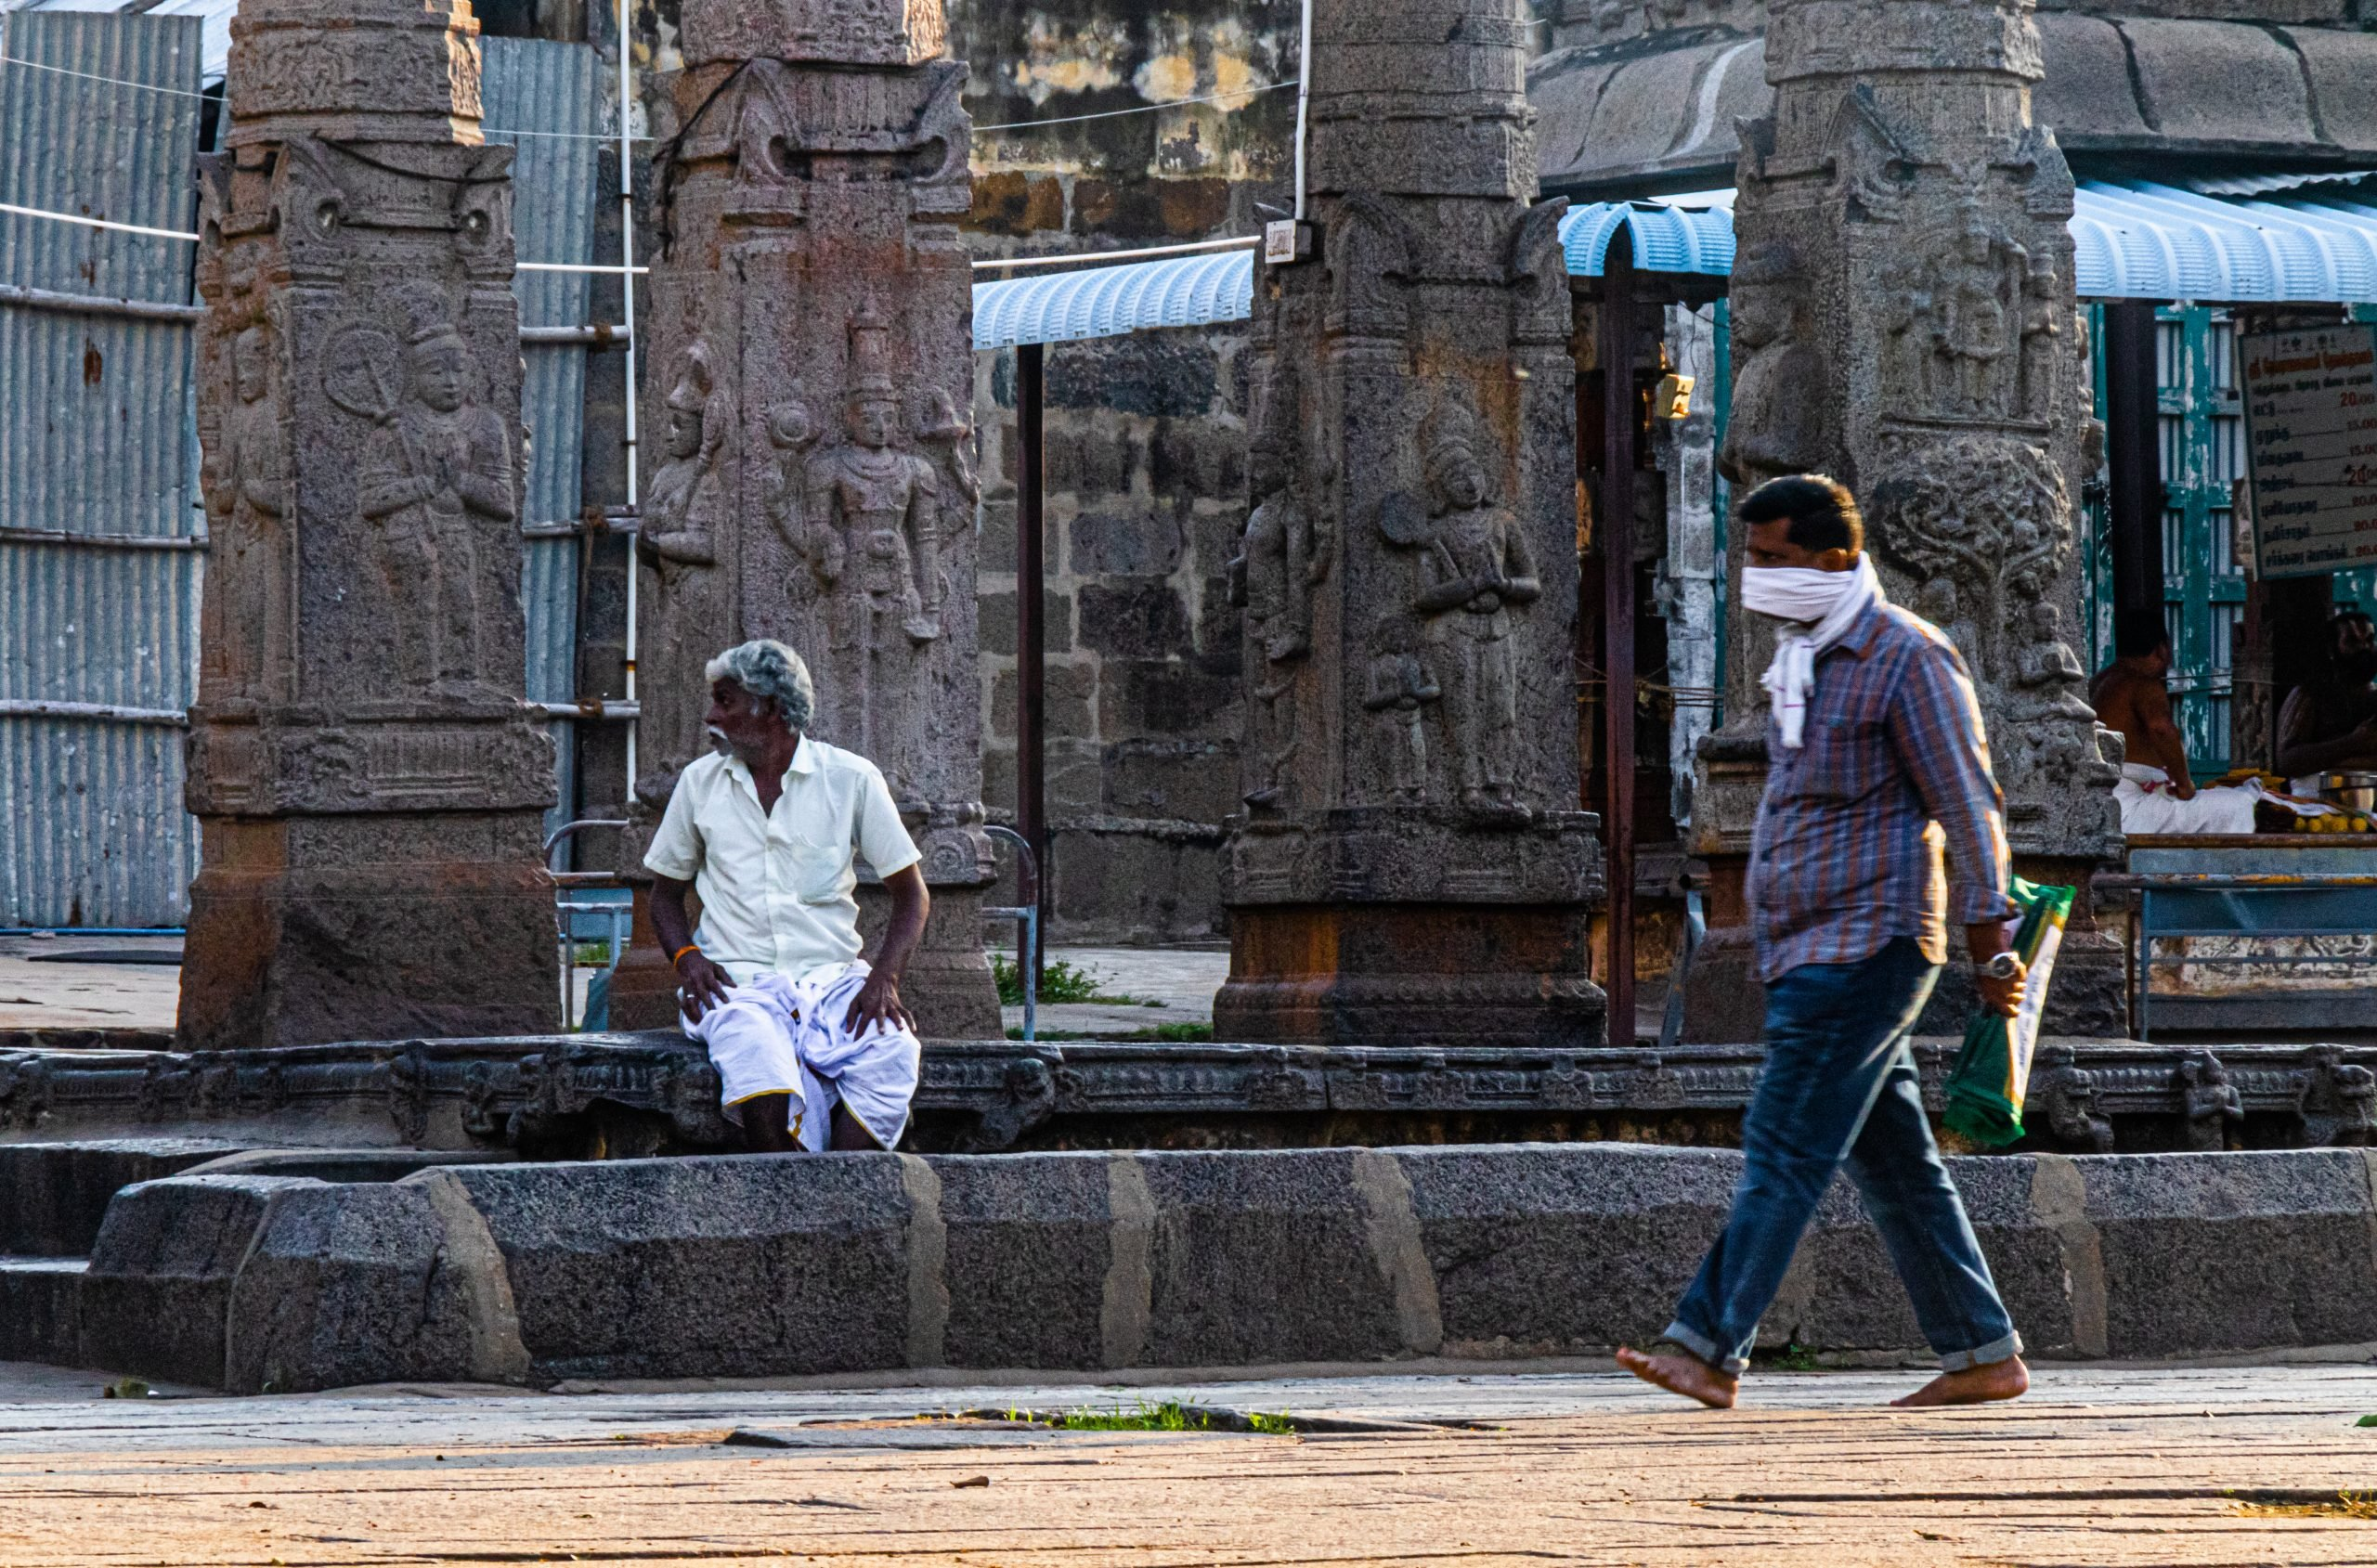 People outside the temple